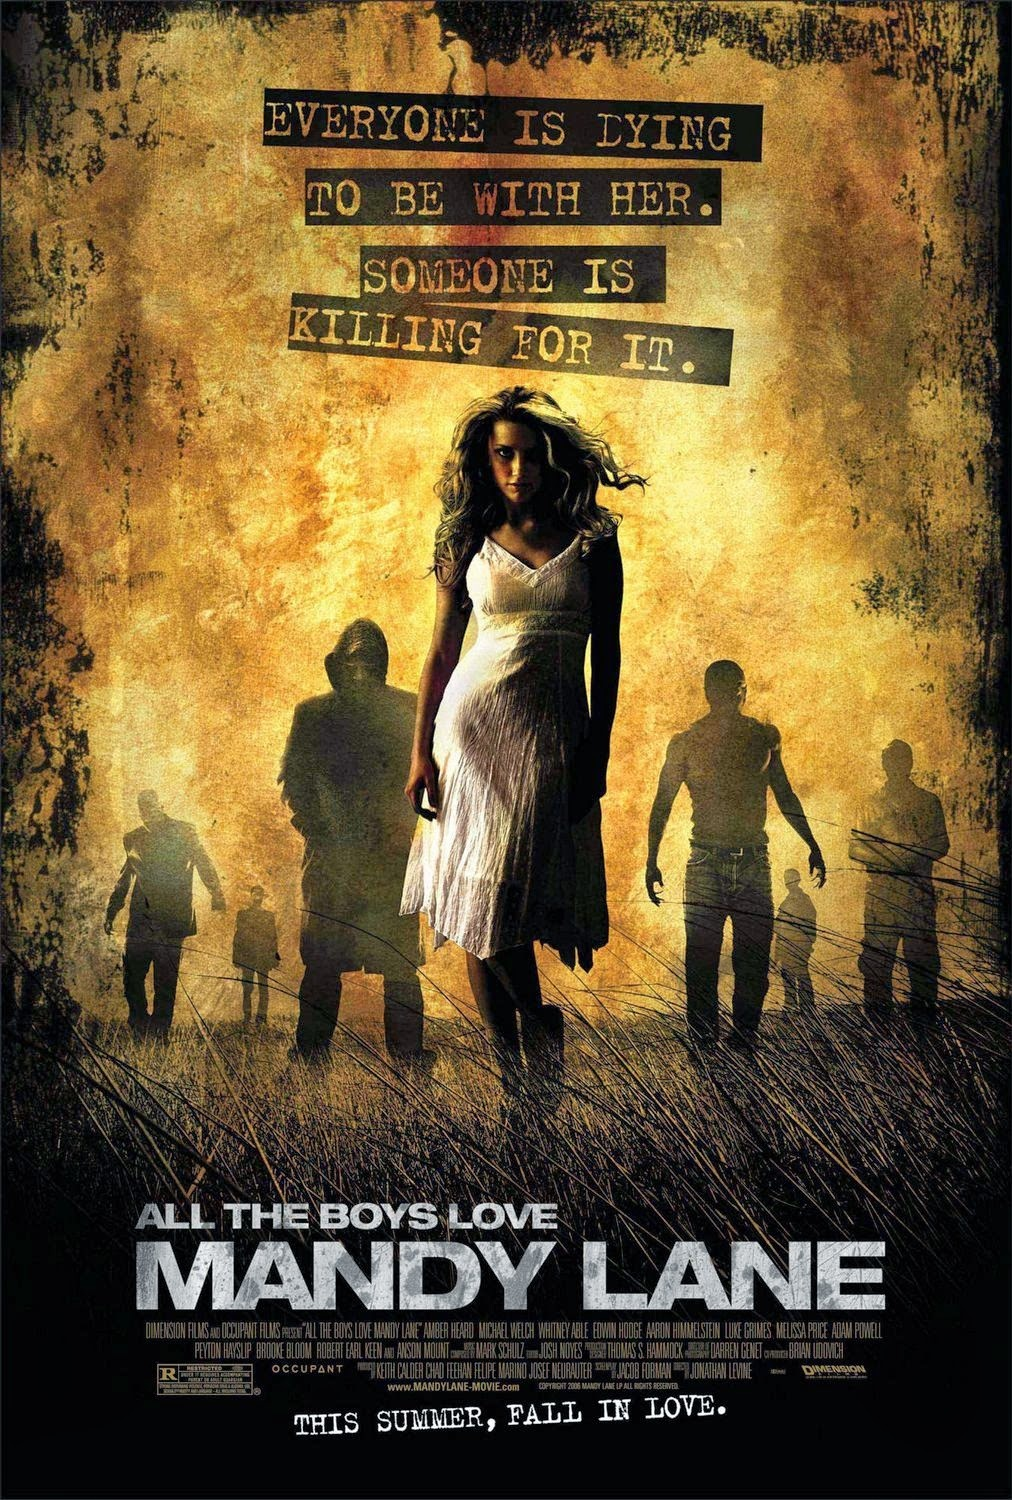 http://static.tvtropes.org/pmwiki/pub/images/all_the_boys_love_mandy_lane.jpg